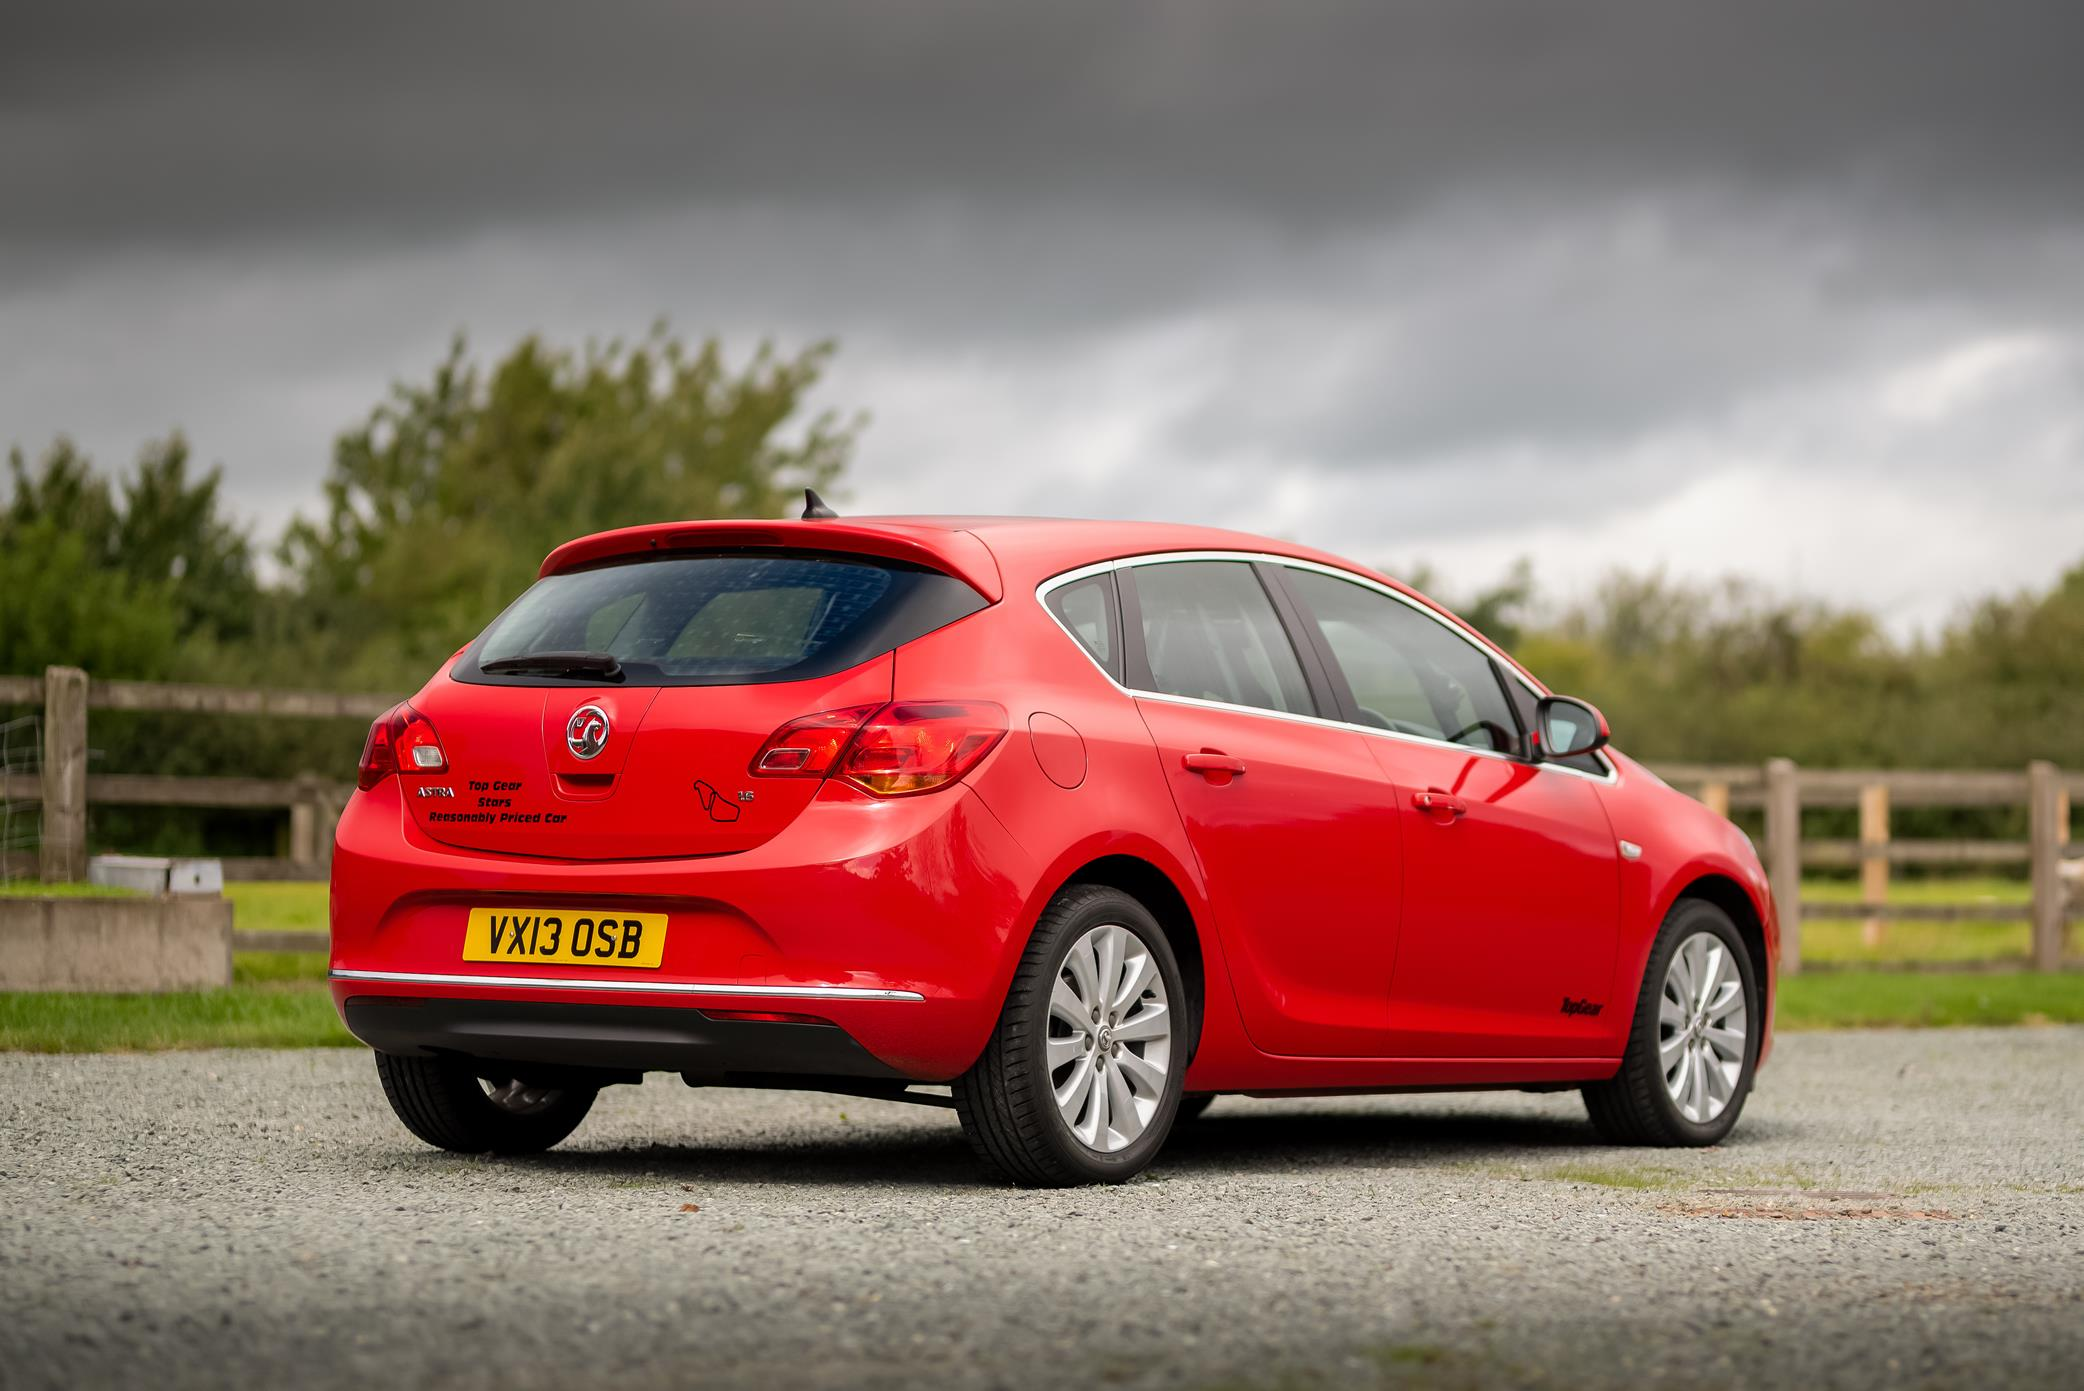 Vauxhall-Astra-Reasonably-Priced-Car-for-sale-5